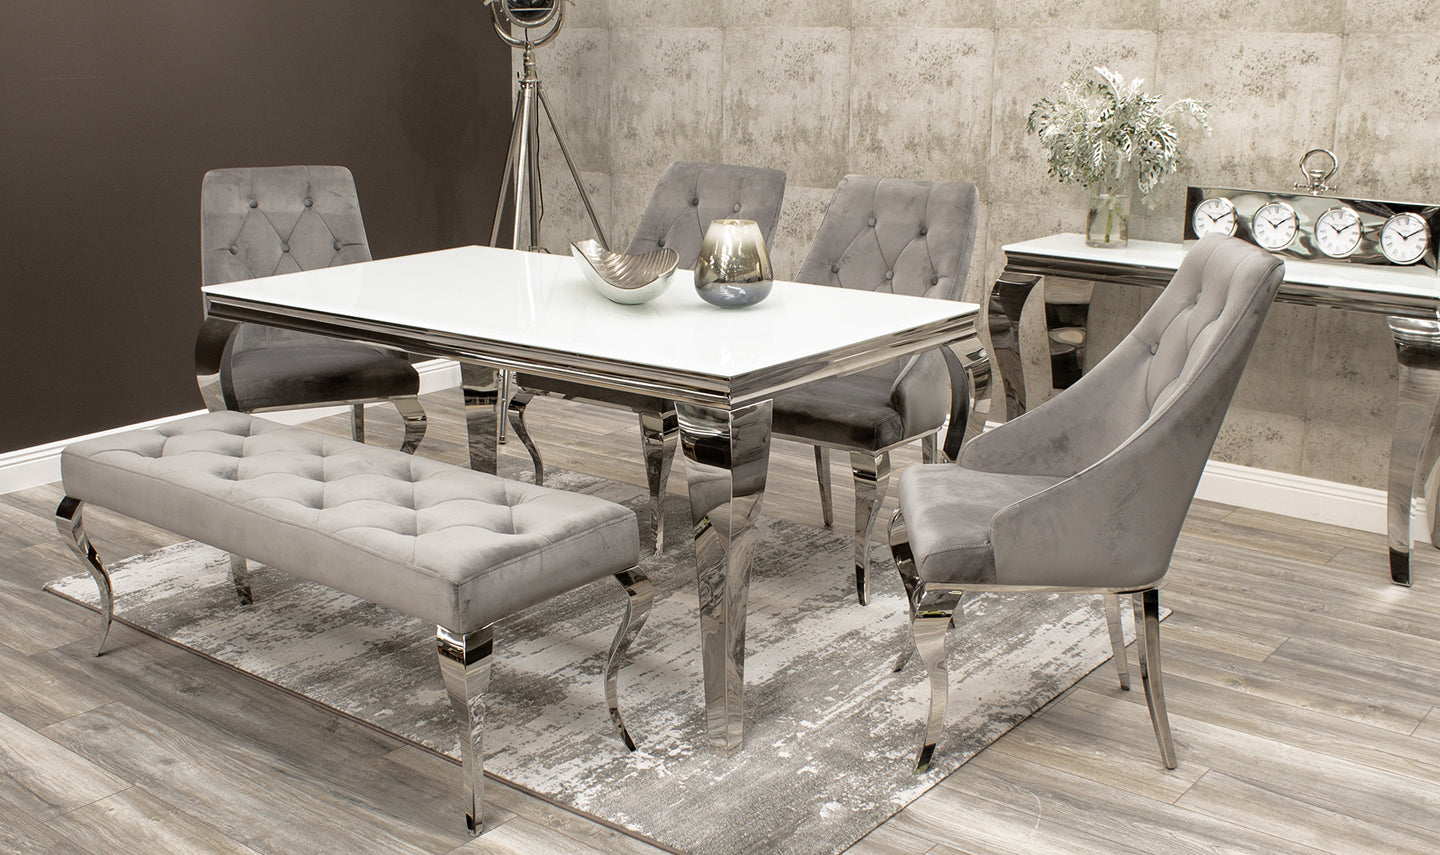 Louis 200cm White Glass Dining Table Cassia Dining Chairs Louis Bench Set